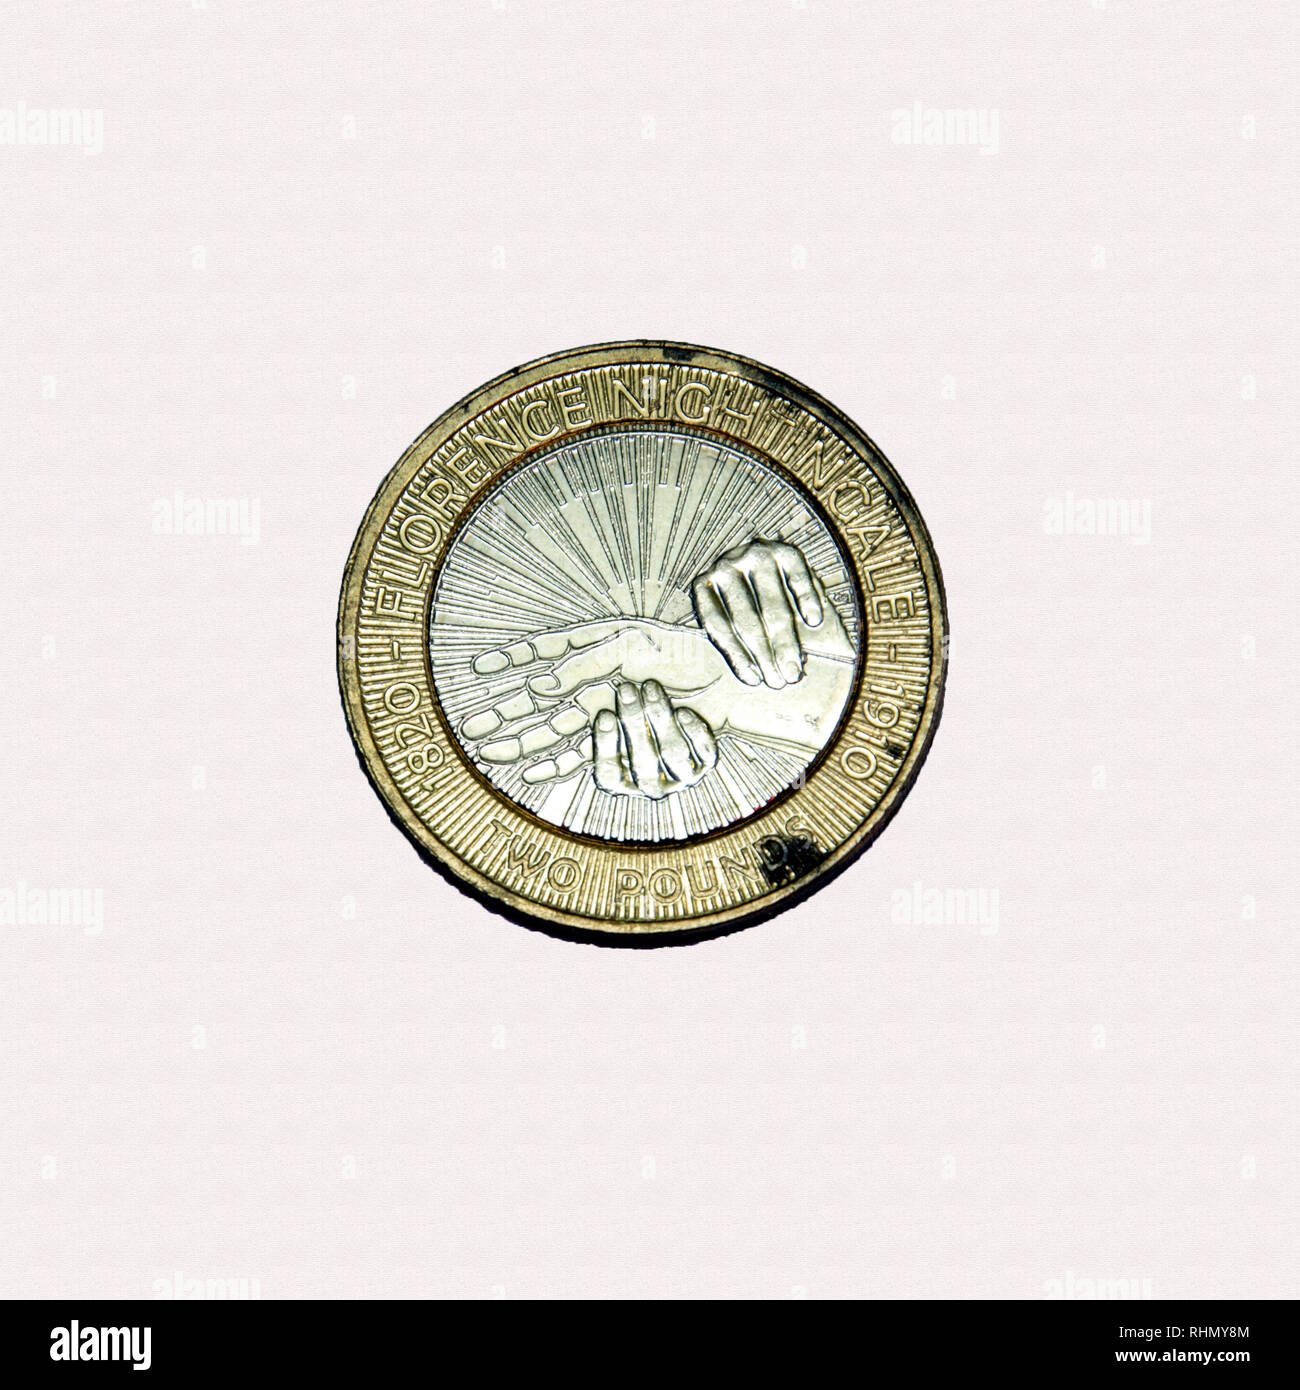 Limited edition British £2 coin commemorating the famous nurse Florence Nightingale Stock Photo